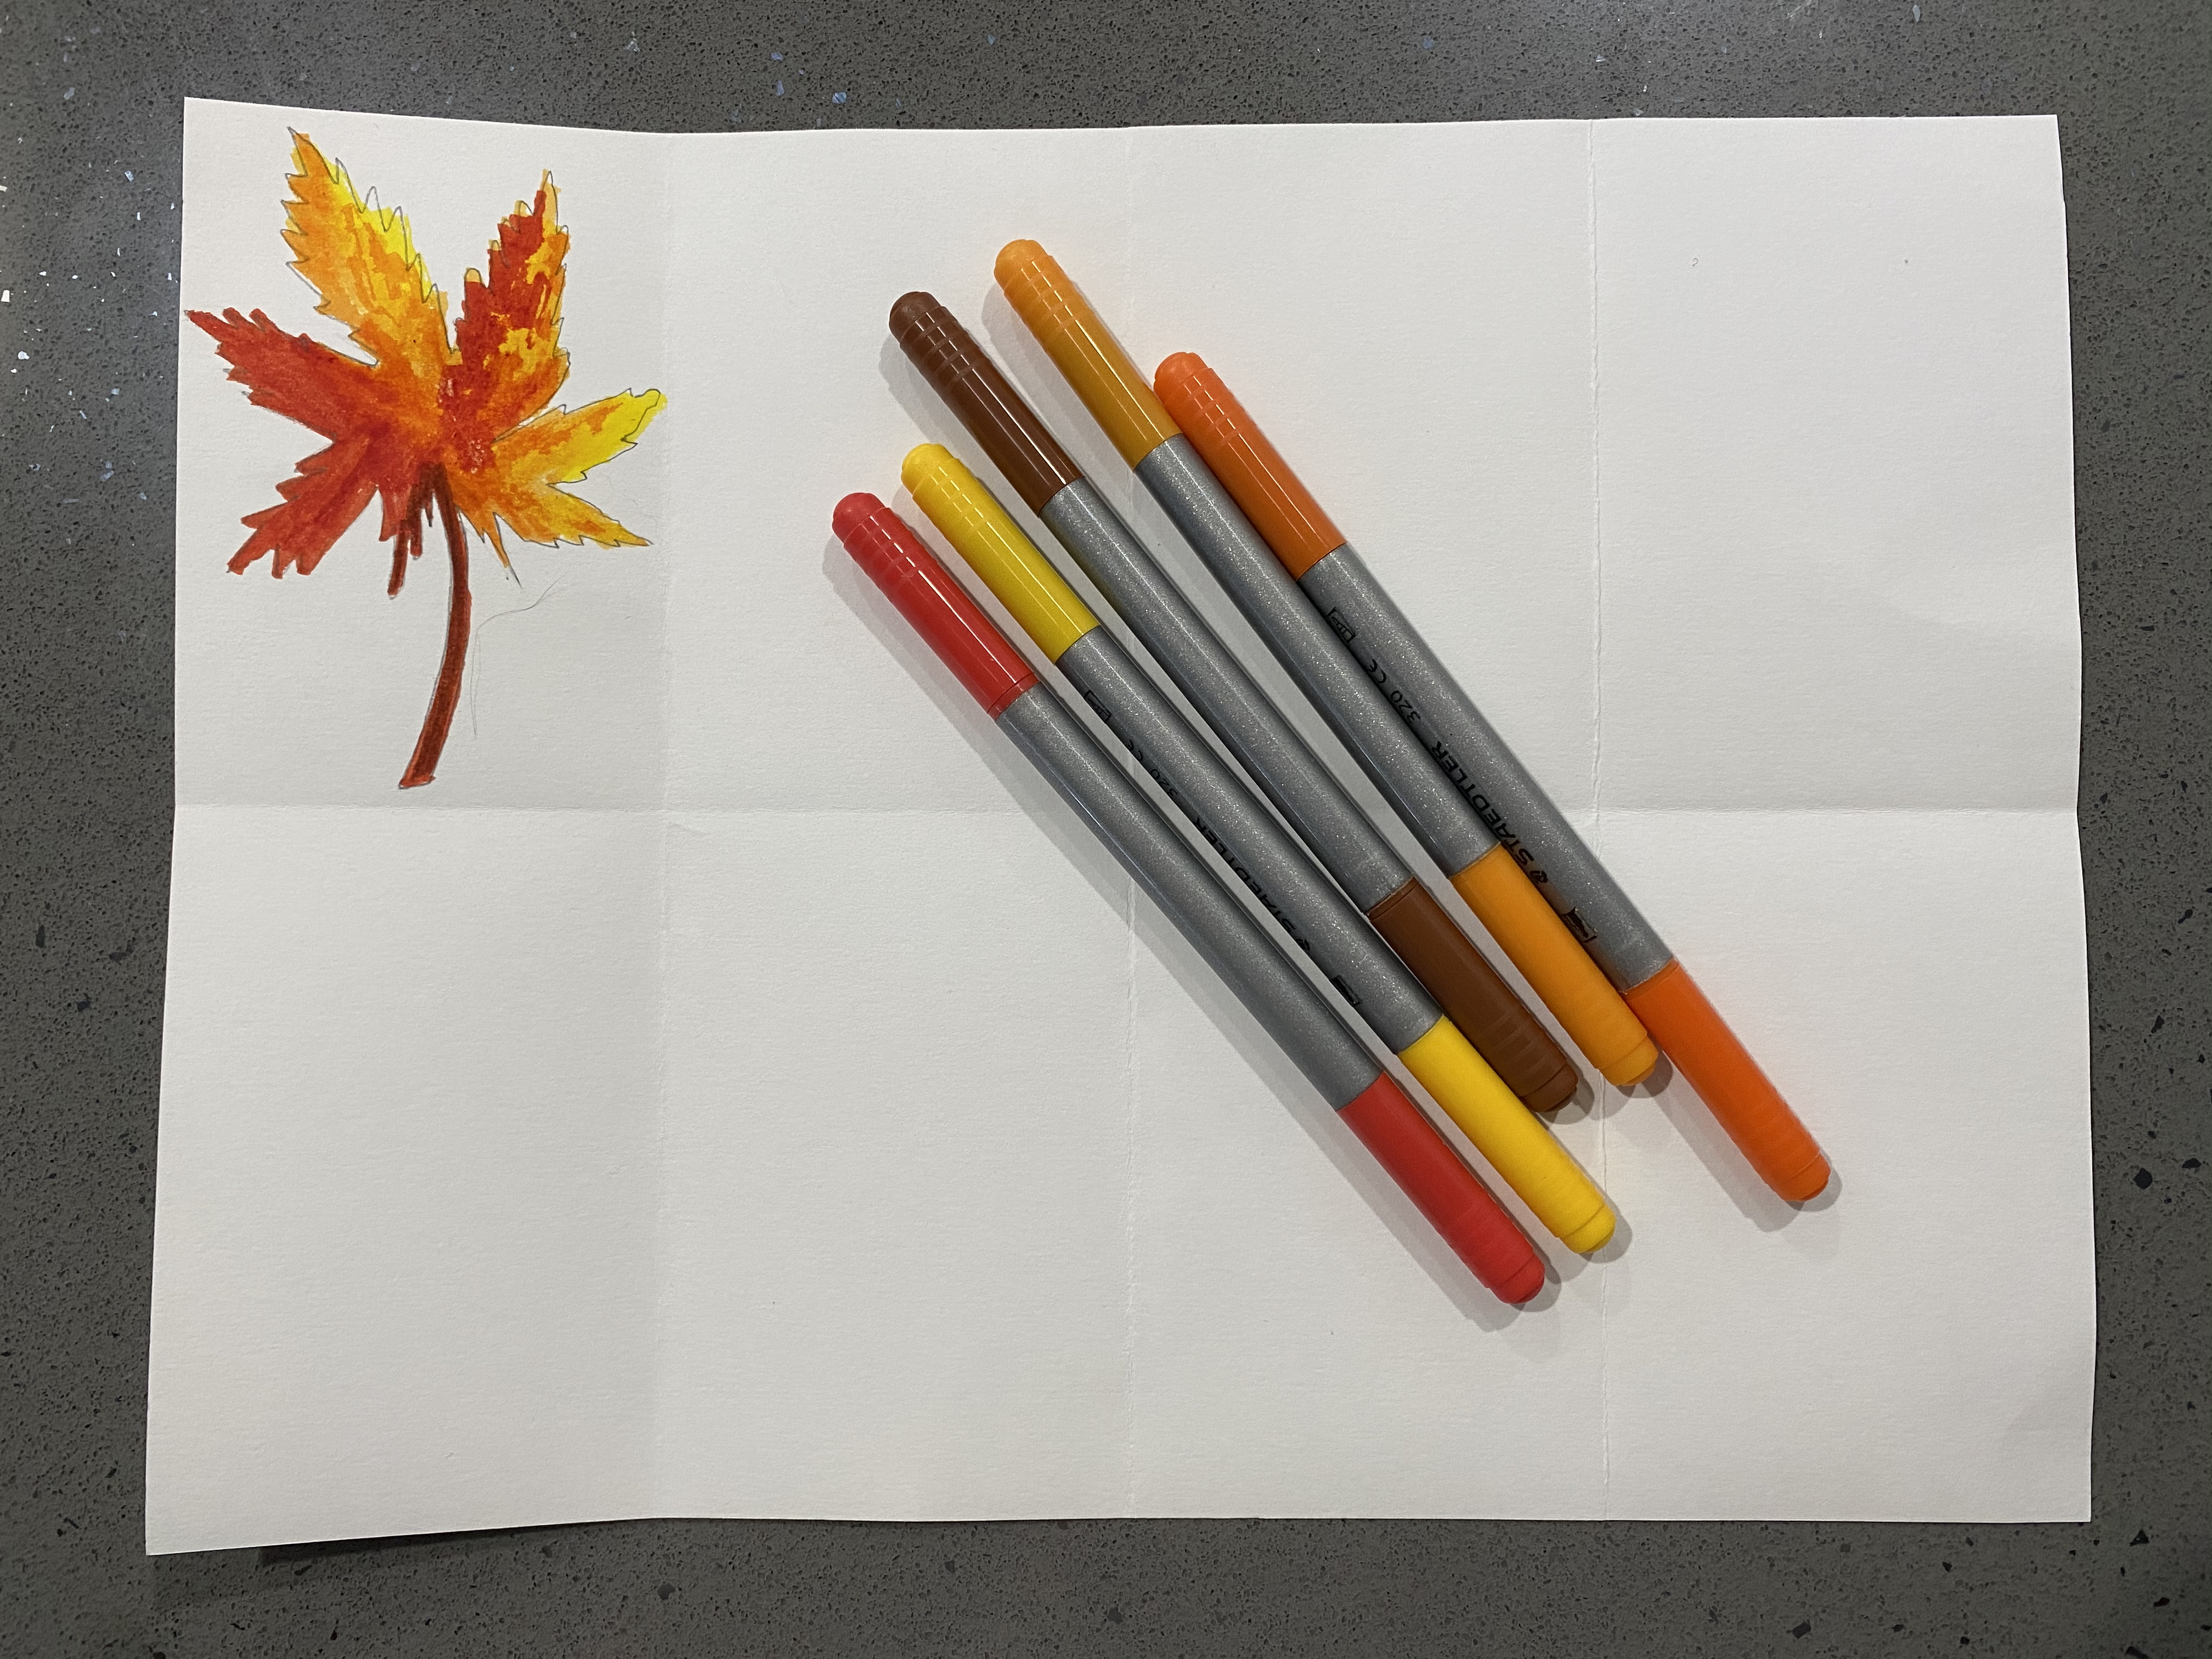 Now you can color in your leaves with markers, crayons, or colored pencils.